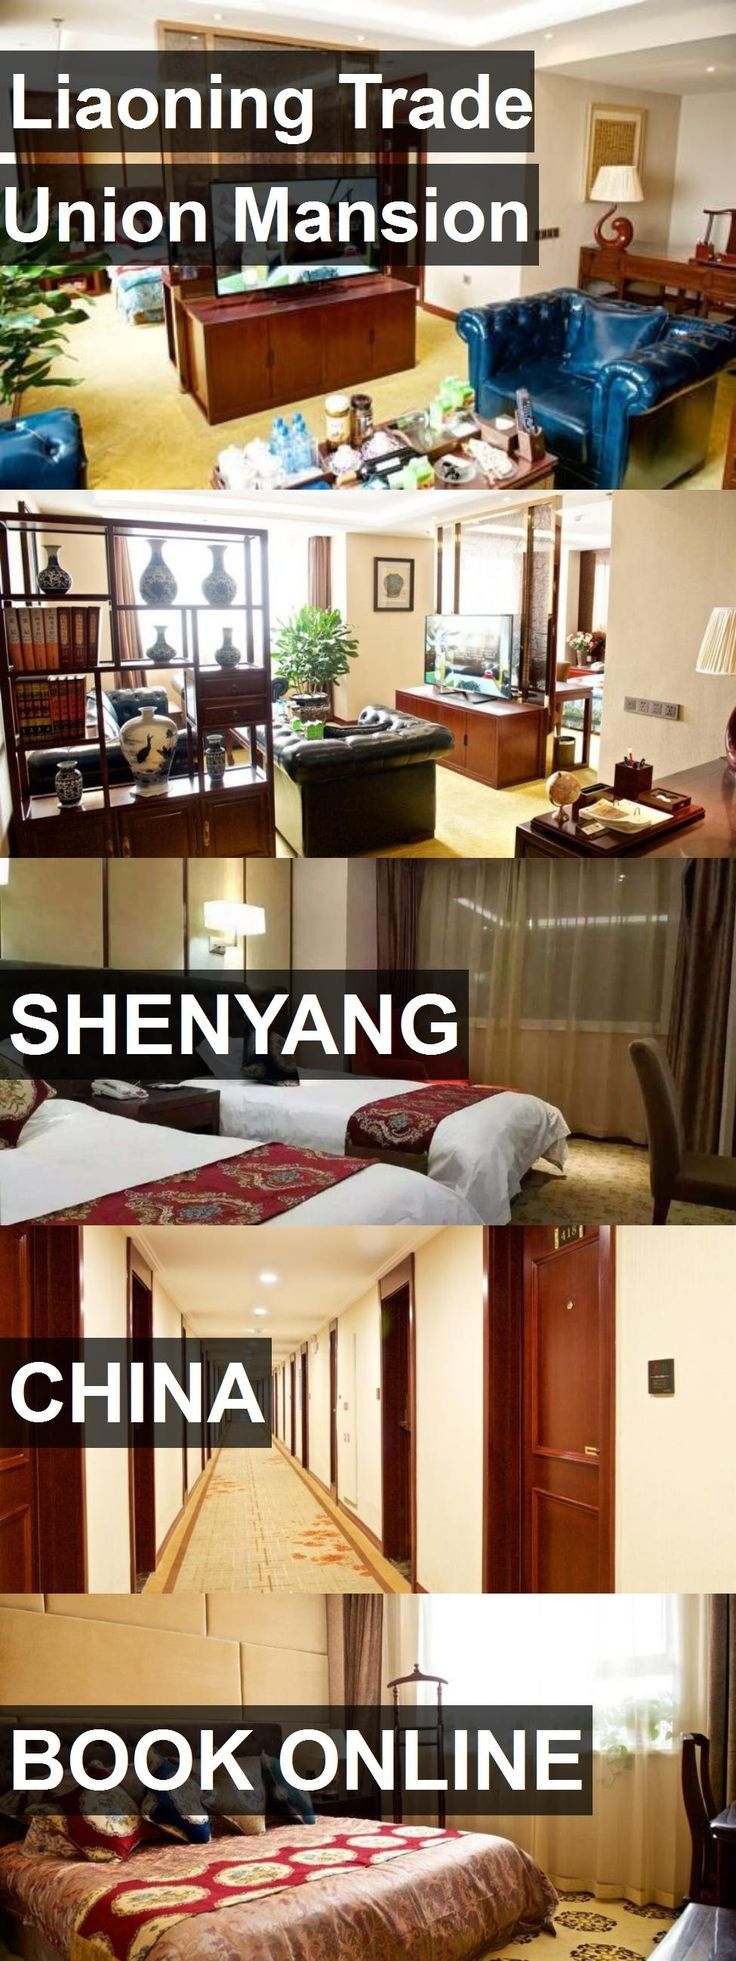 Hotel Liaoning Trade Union Mansion in Shenyang, China. For more information, photos, reviews and best prices please follow the link. #China #Shenyang #LiaoningTradeUnionMansion #hotel #travel #vacation